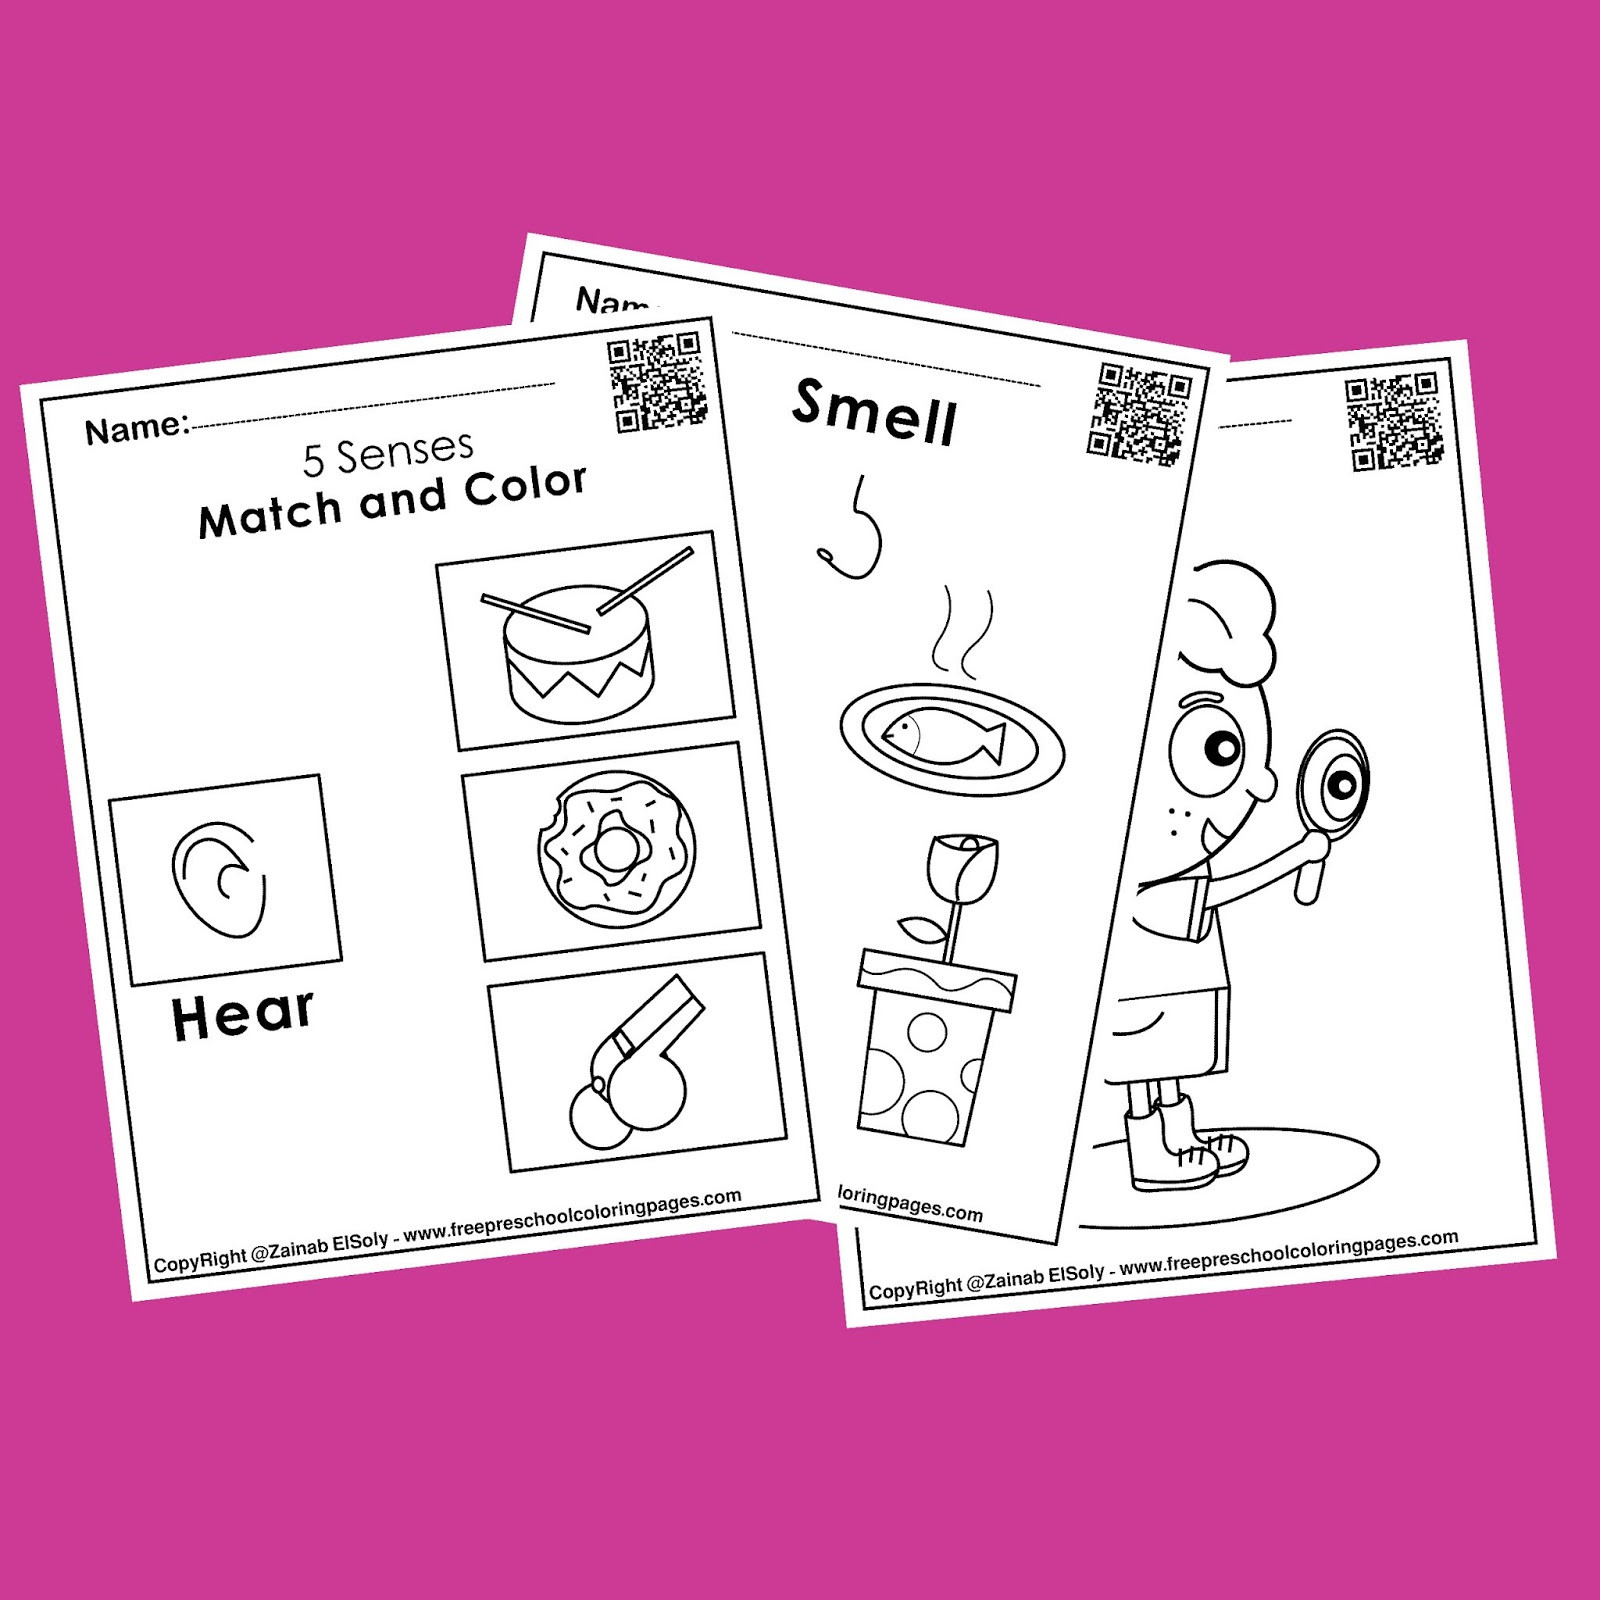 5 Senses Printable Worksheets 5 Senses Free Worksheets Activities for Kids